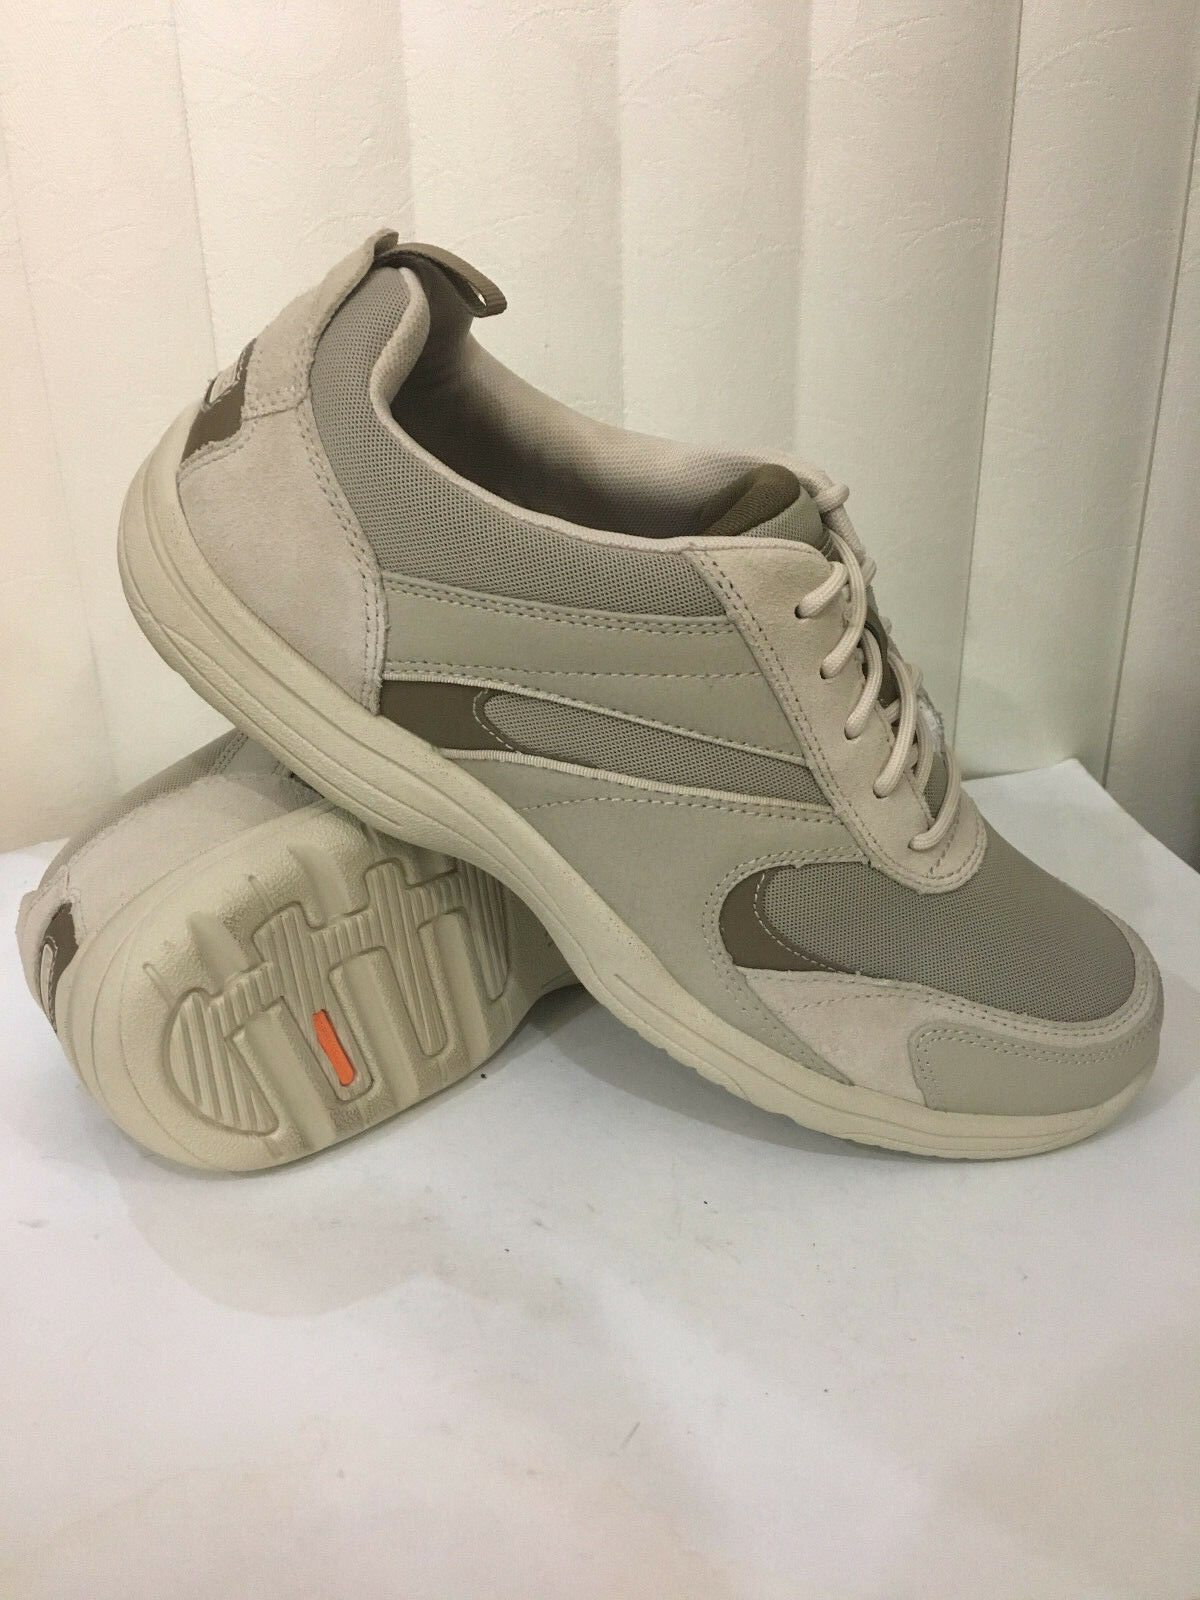 Rockport K73926 Trail Sport Lacets Beige Chaussures Taille 7.5-11 Large